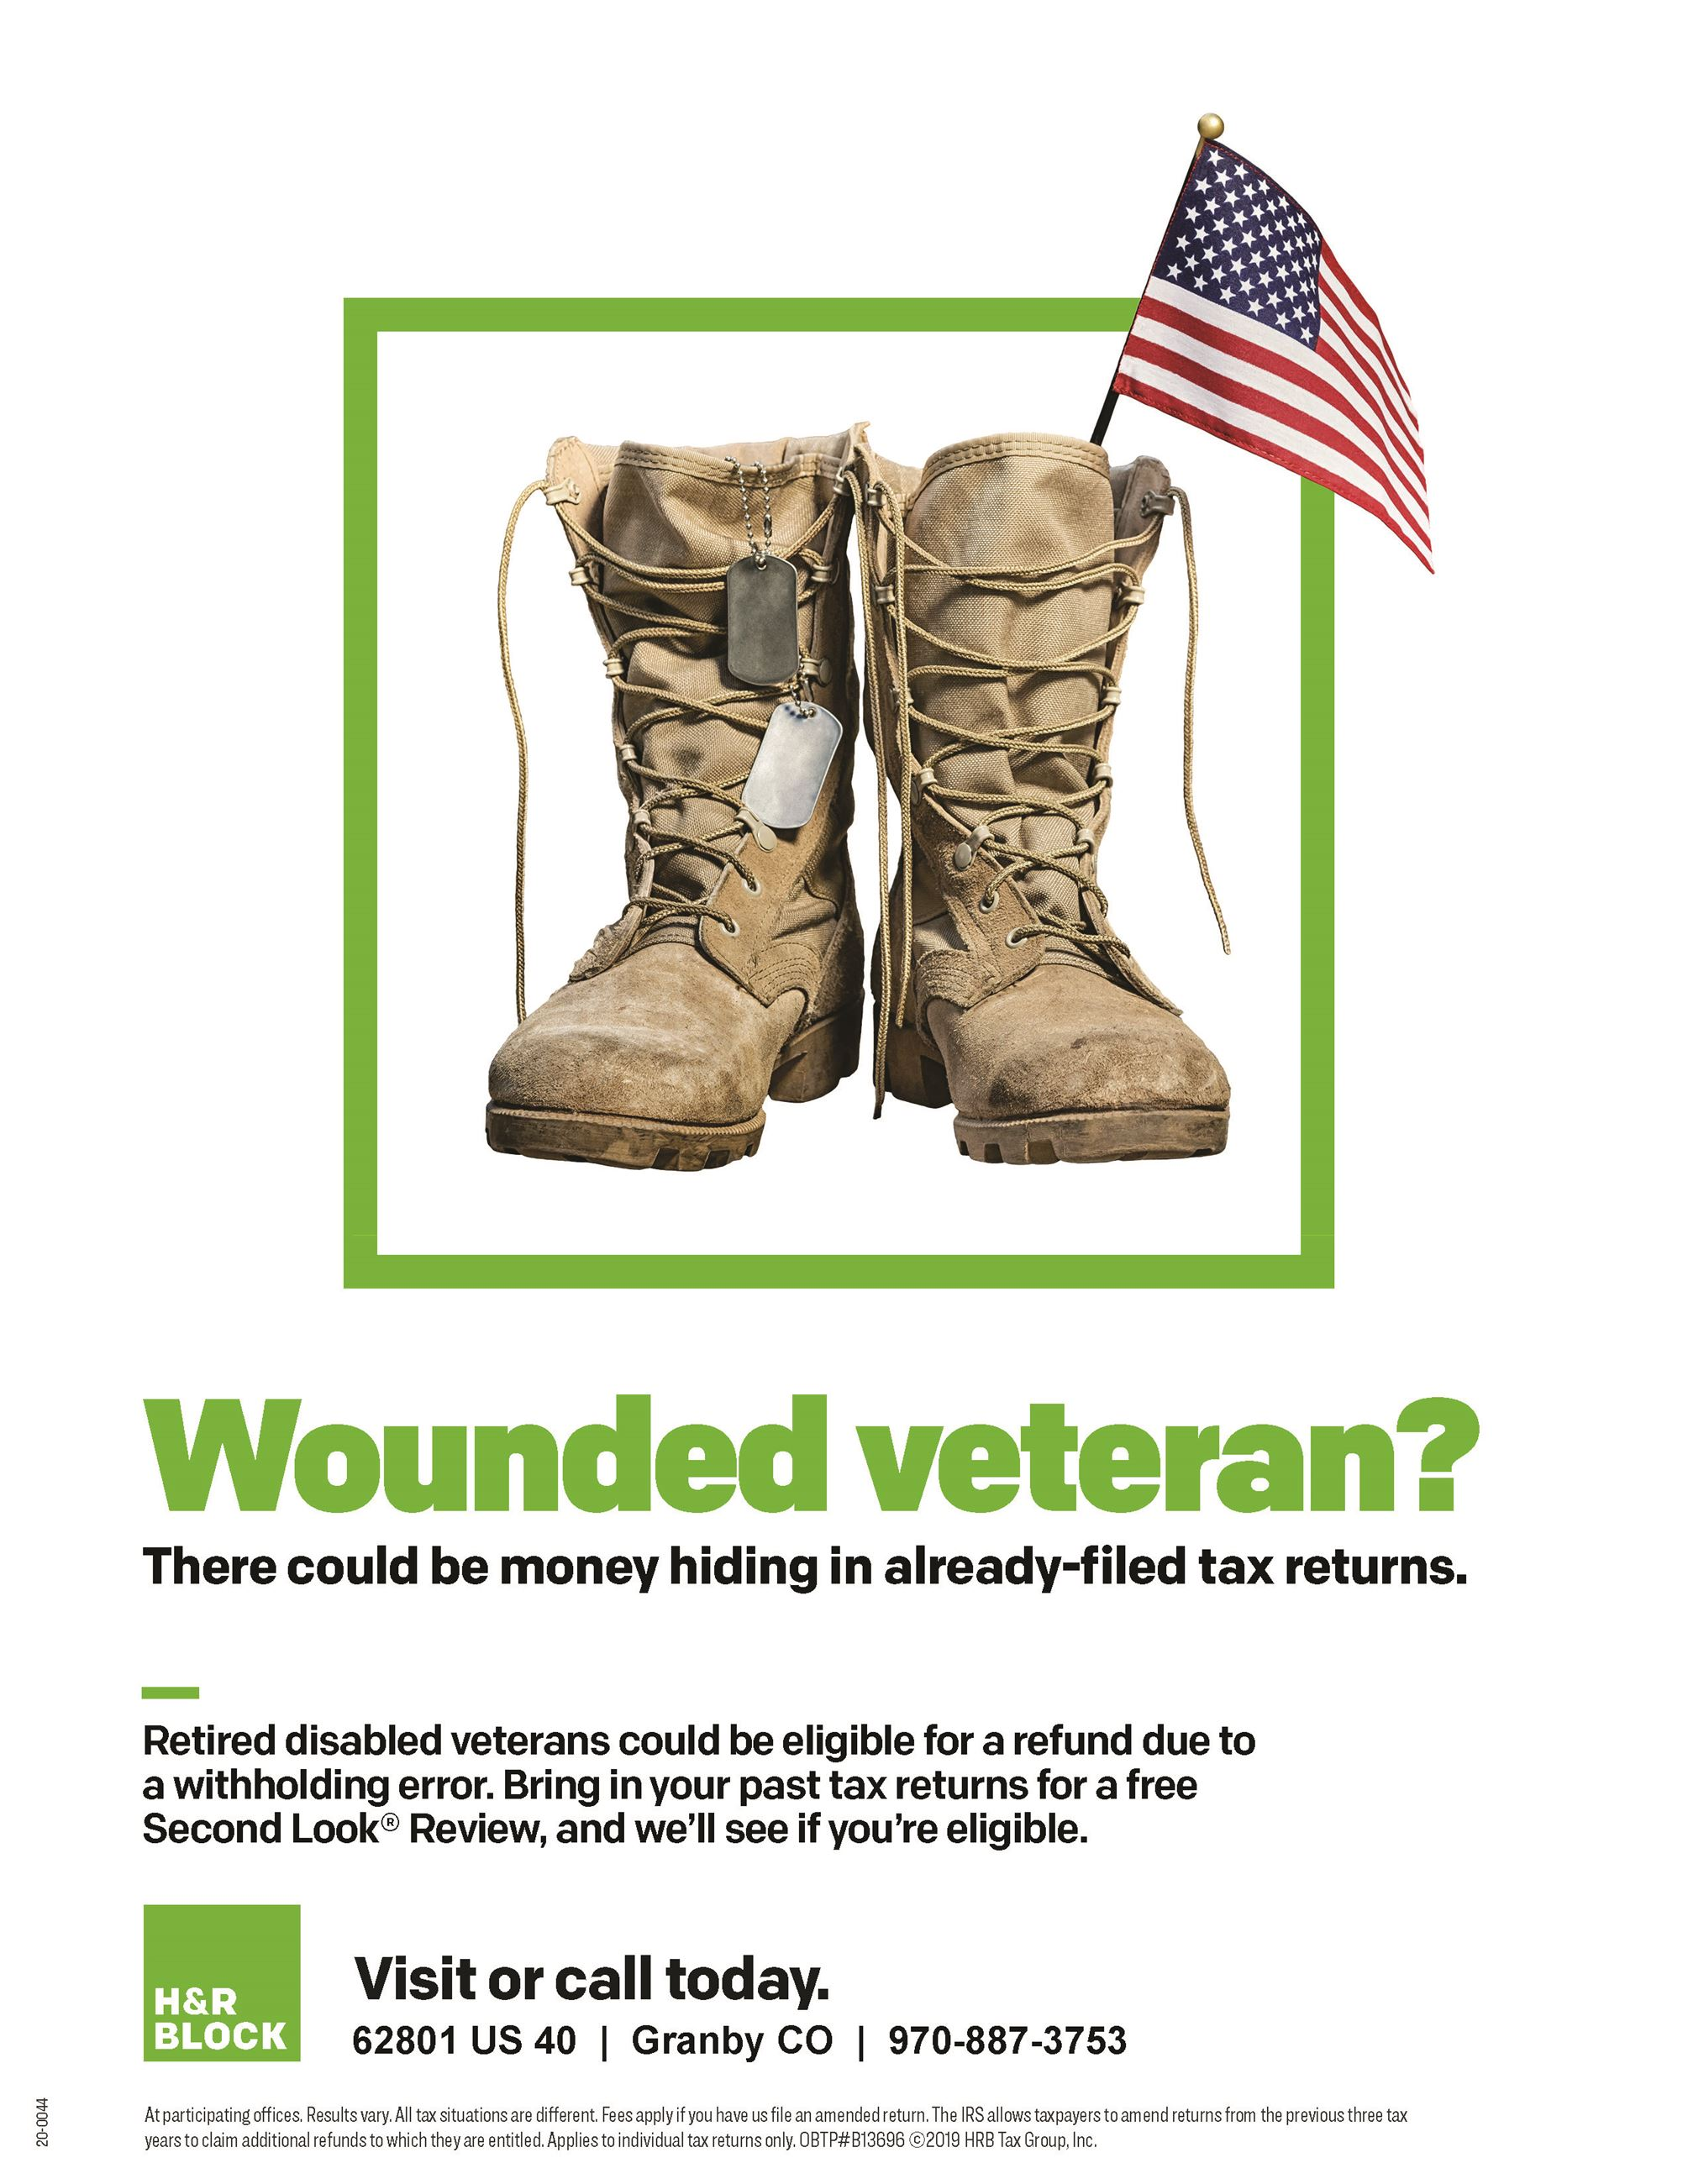 Wounded Veteran? There could be money hiding in already-filed tax returns. Visit or Call today. H&R